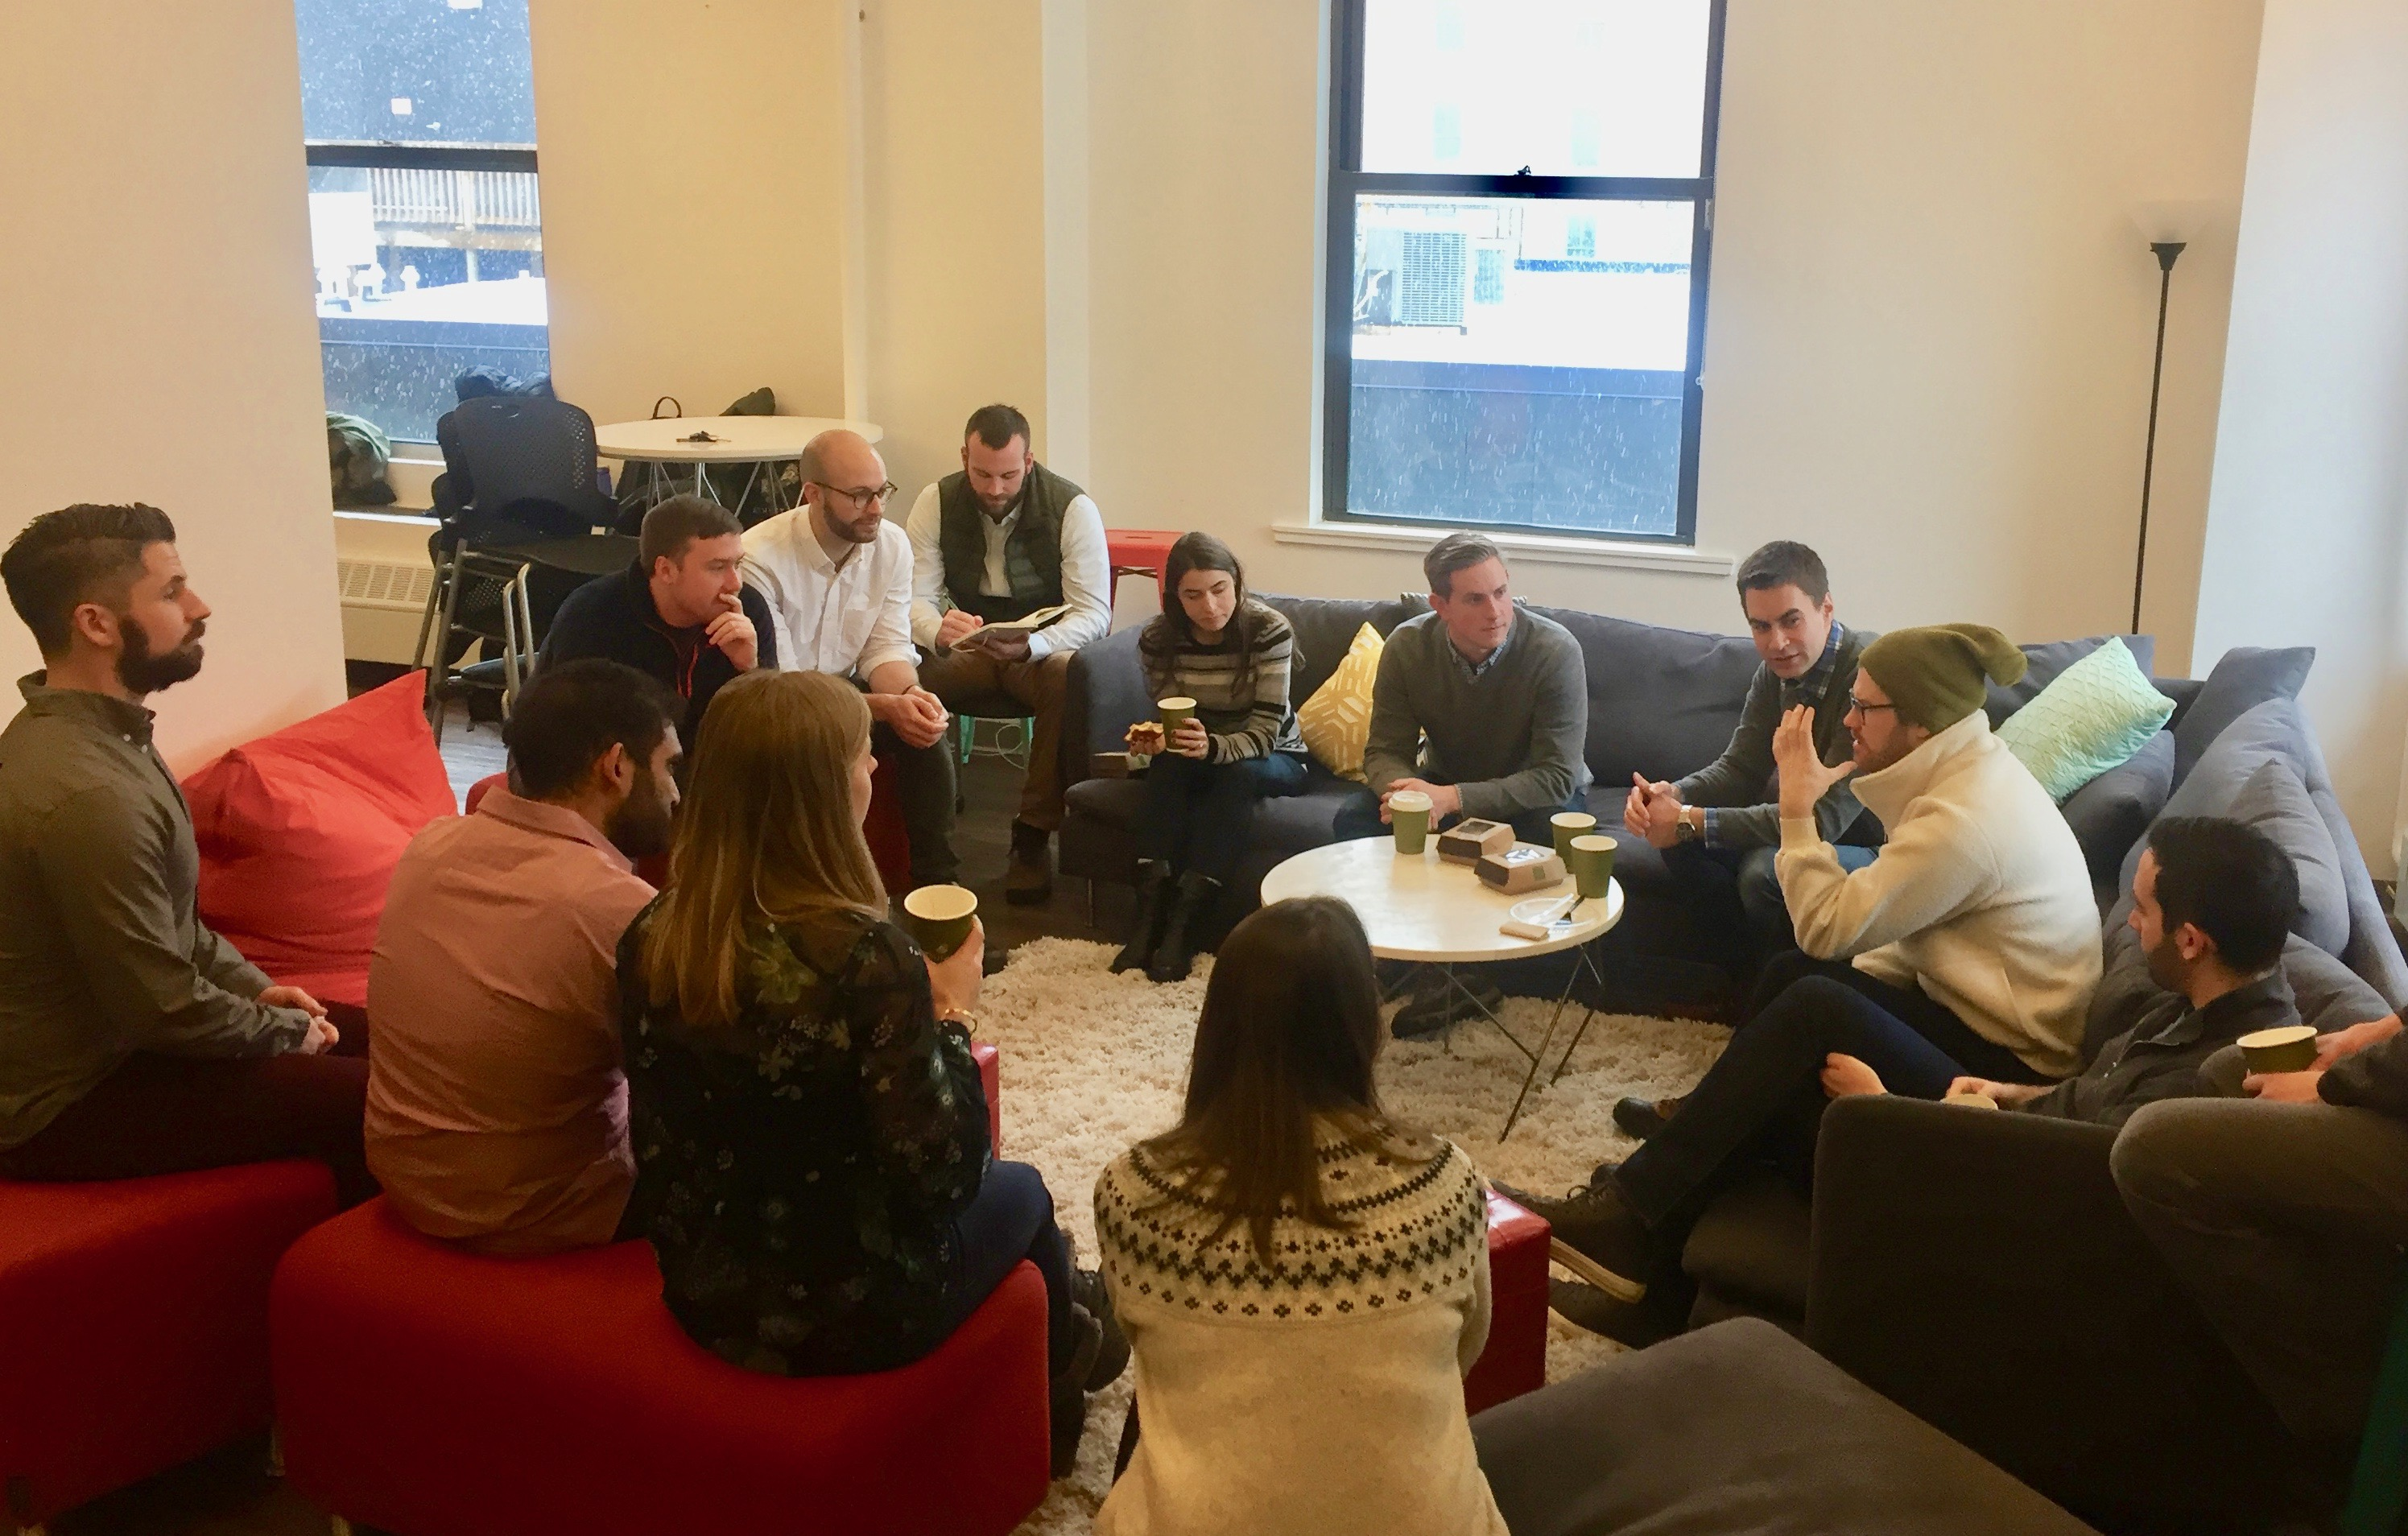 <p>Boston Product Breakfast group meeting in thoughtbot's Boston studio</p>